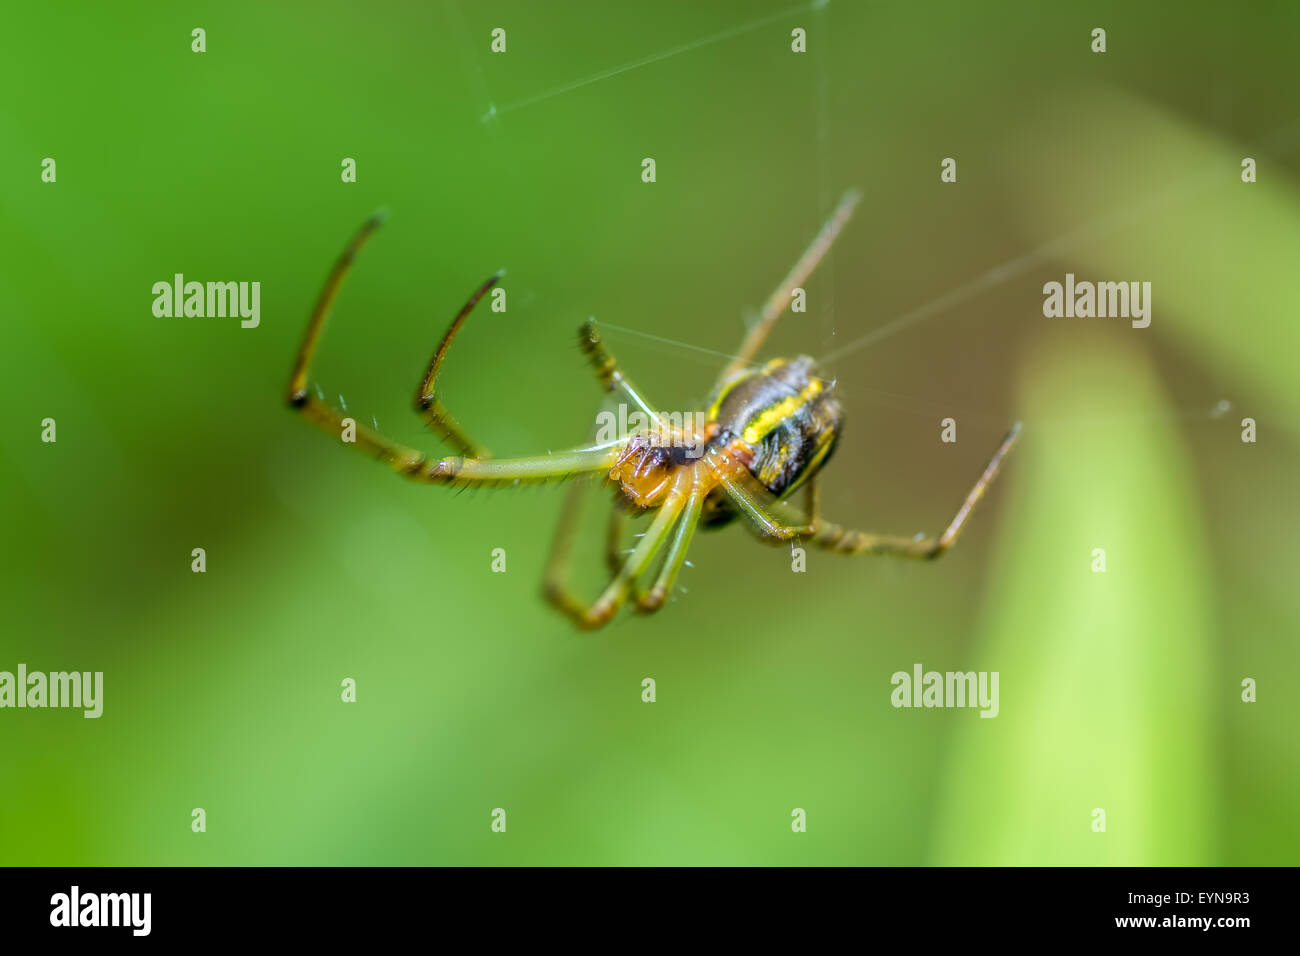 Extreme close up of Spider Leucauge sp on it's web - Stock Image